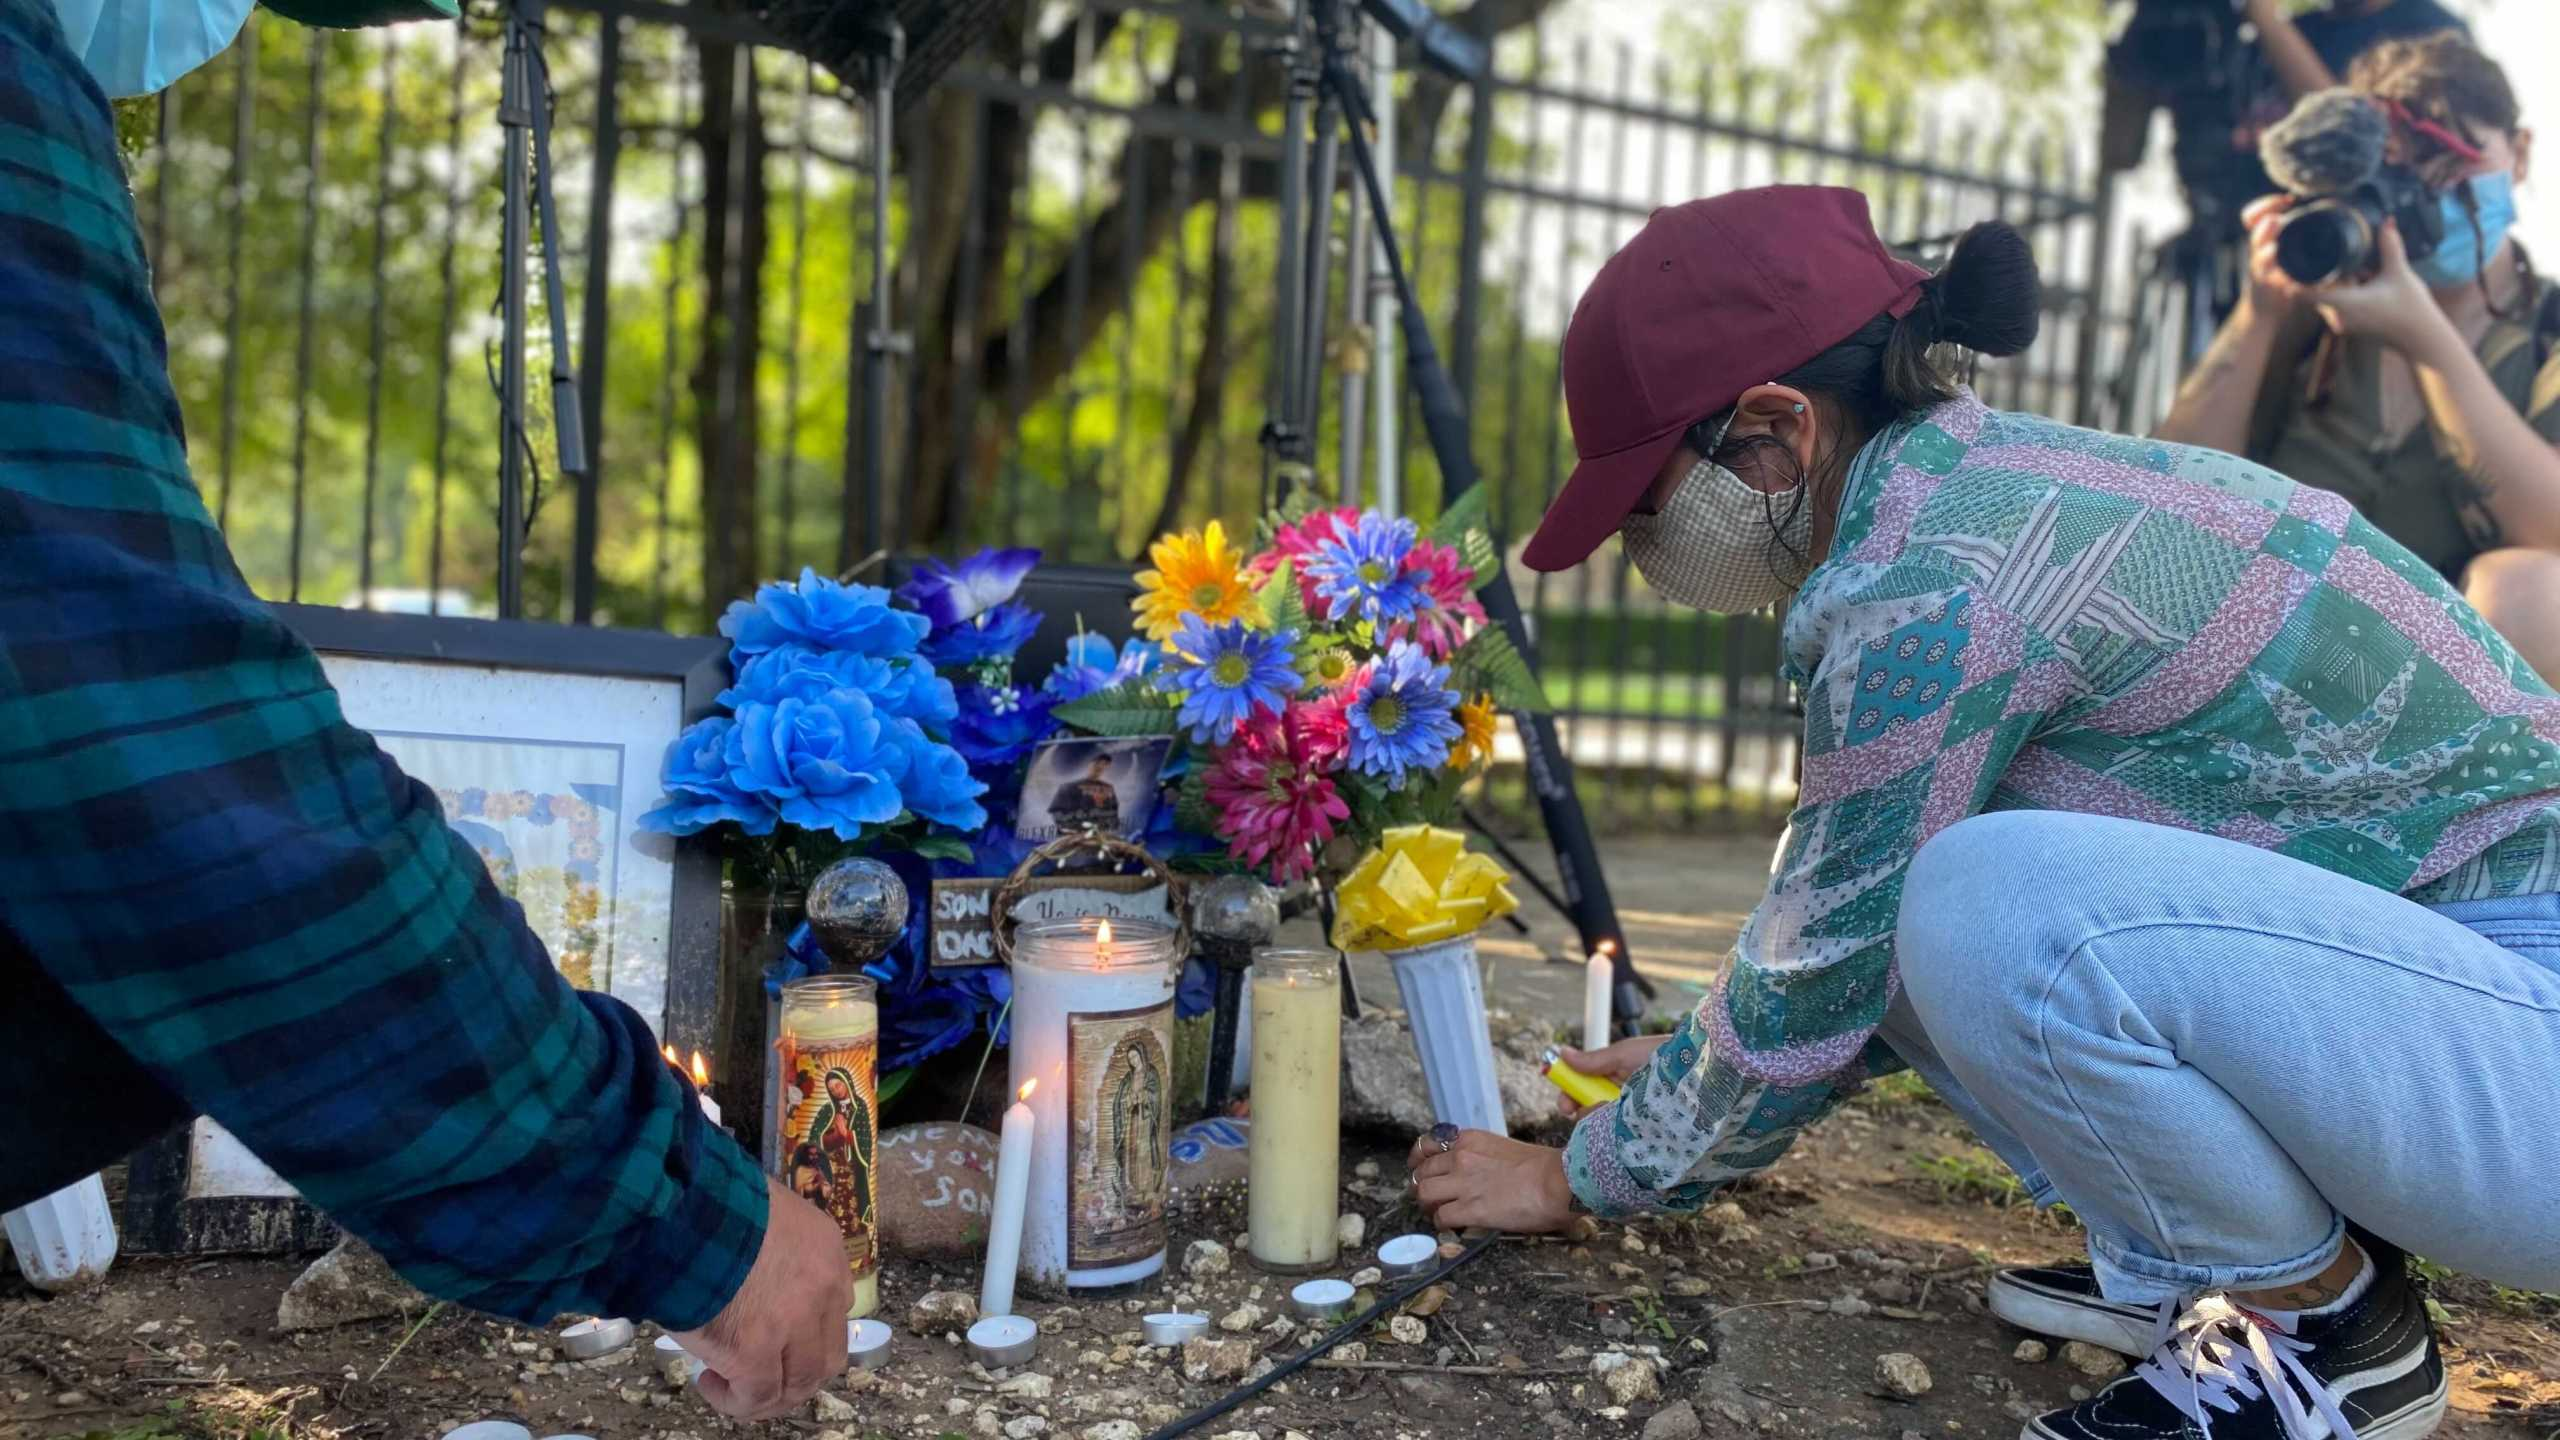 Memorial being set up for Alex Gonzales at rally off Wickersham Lane June 5, 2021 (KXAN Photo/Kaitlyn Karmout)